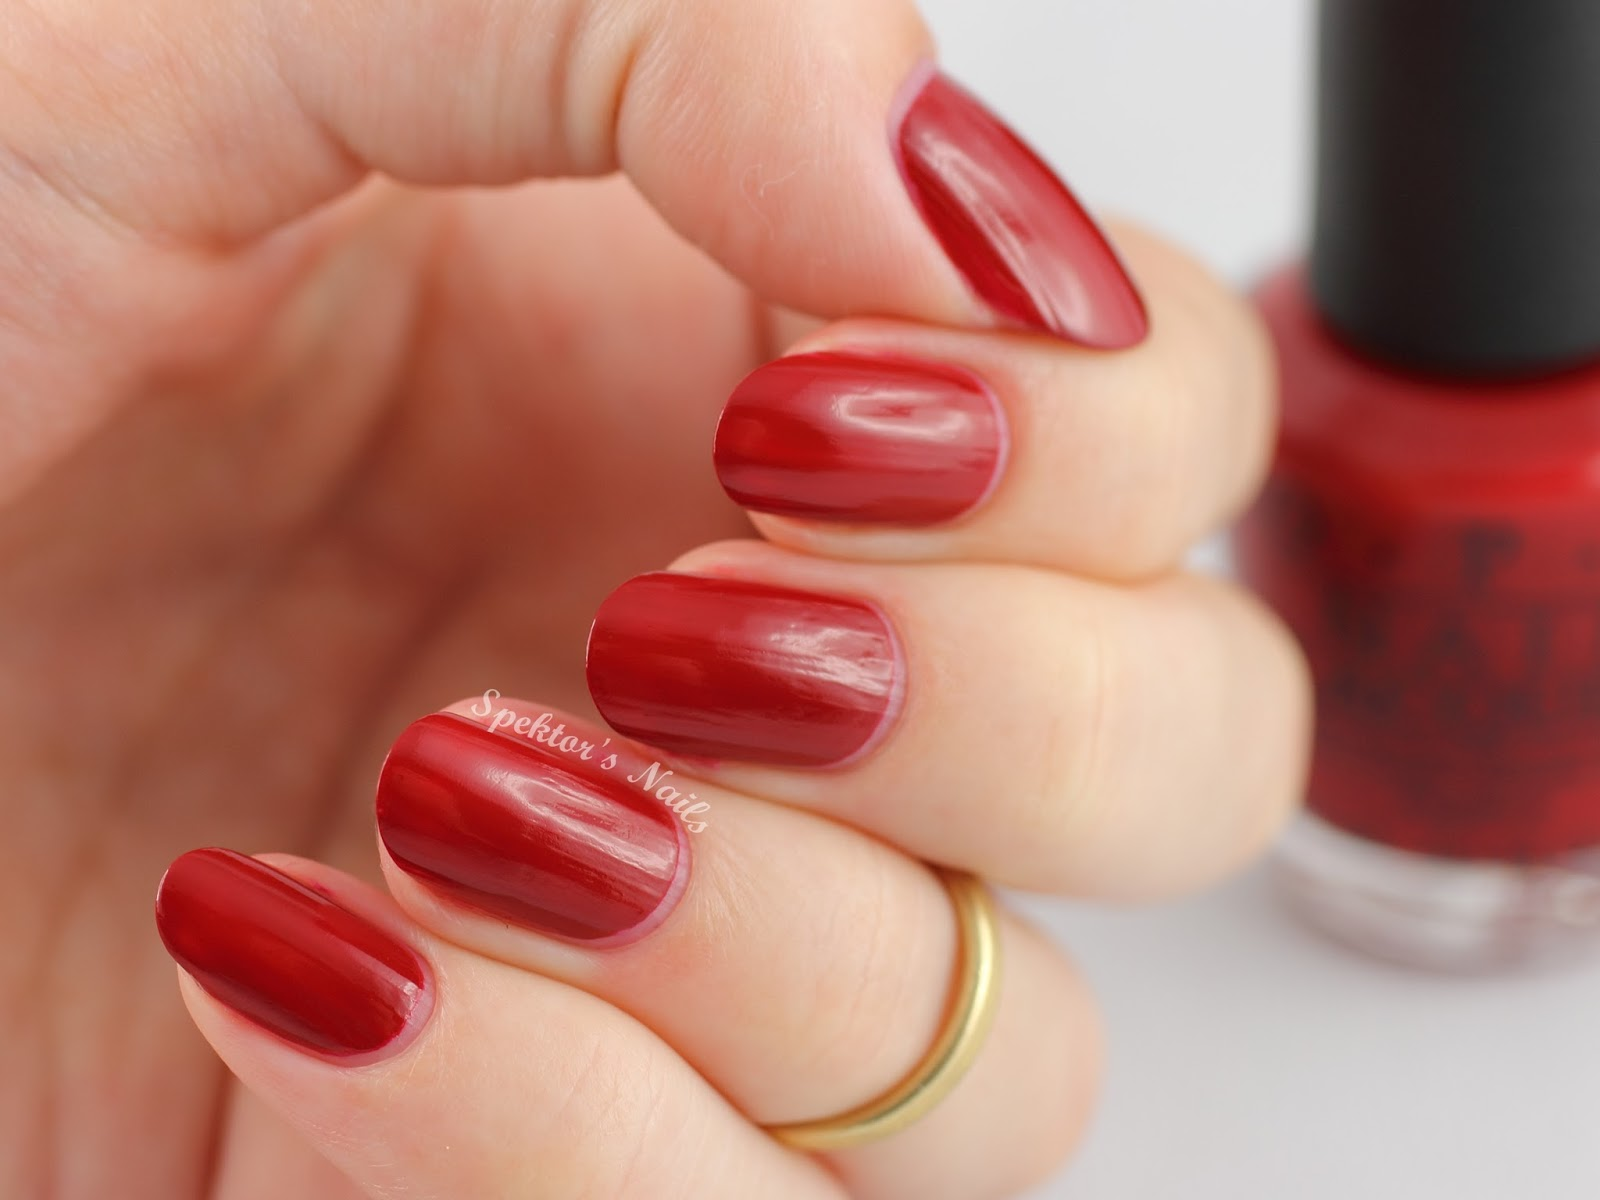 OPI Holiday 2014 Cinnamon Sweet